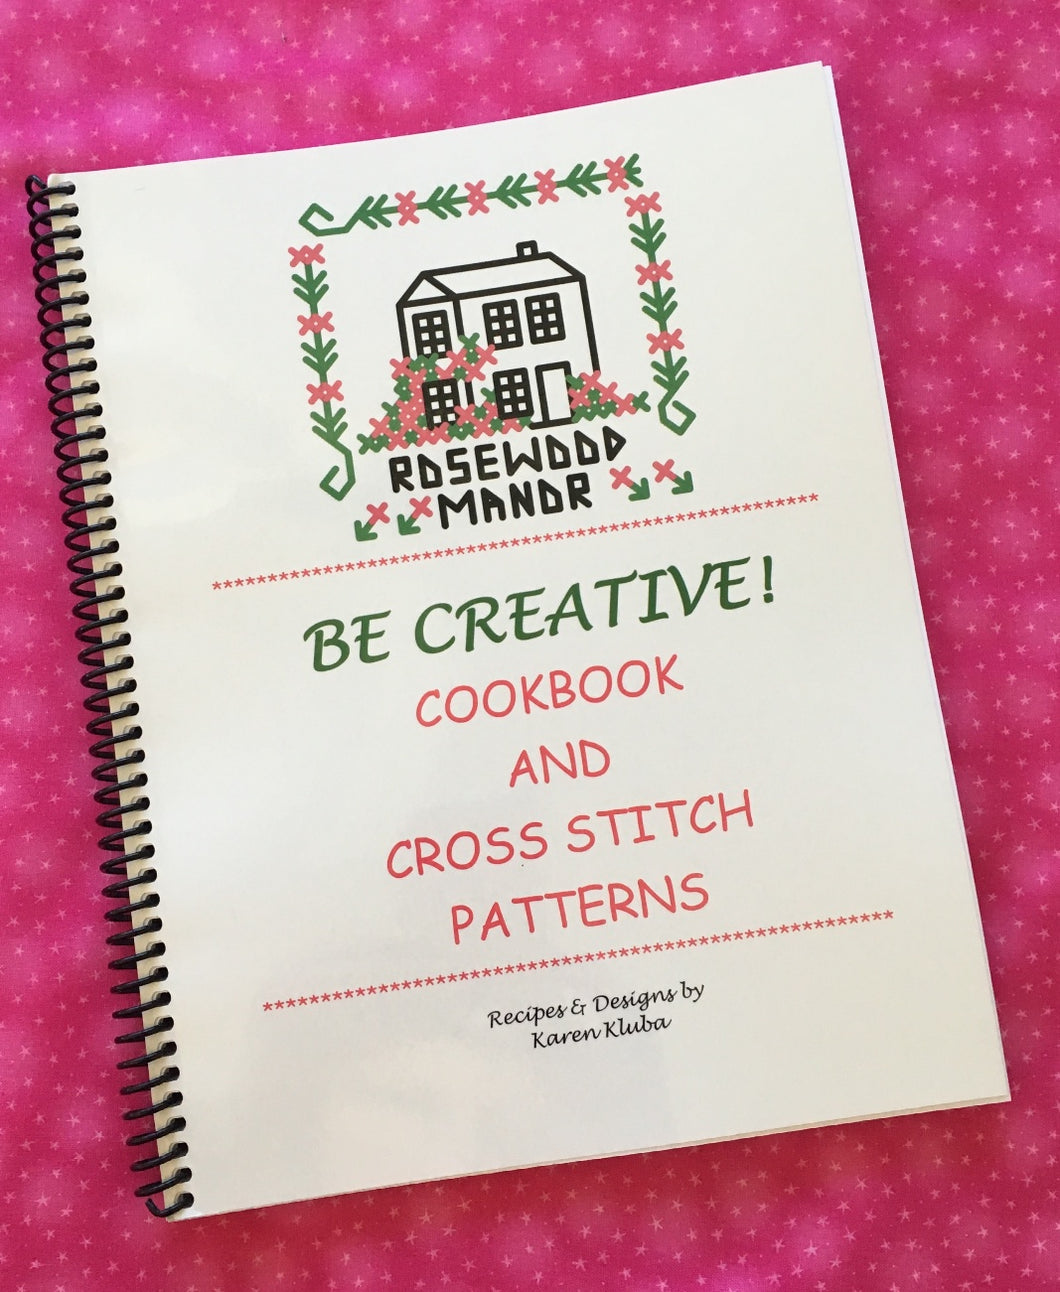 BE CREATIVE! COOKBOOK & CROSS STITCH PATTERNS